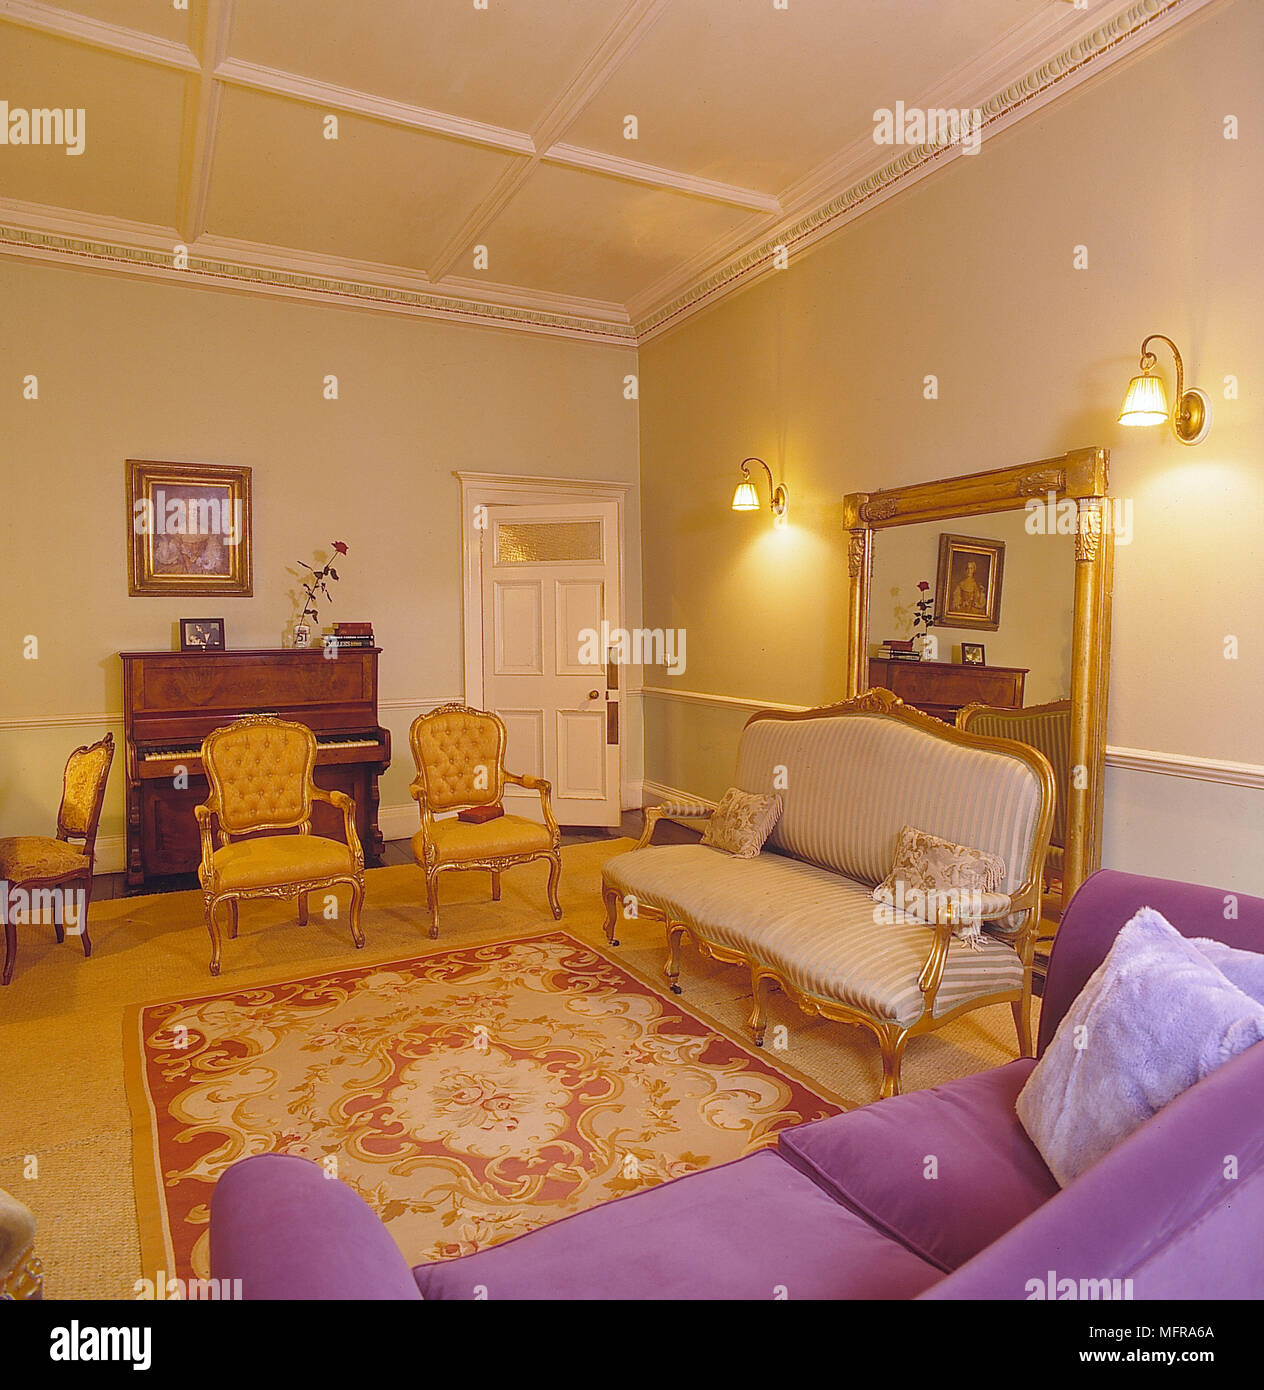 red rug living room ideas the best paint color for sitting yellow walls gold carpet purple couch chairs piano large mirror ineteriors rooms antiques painting wall lights plasterw